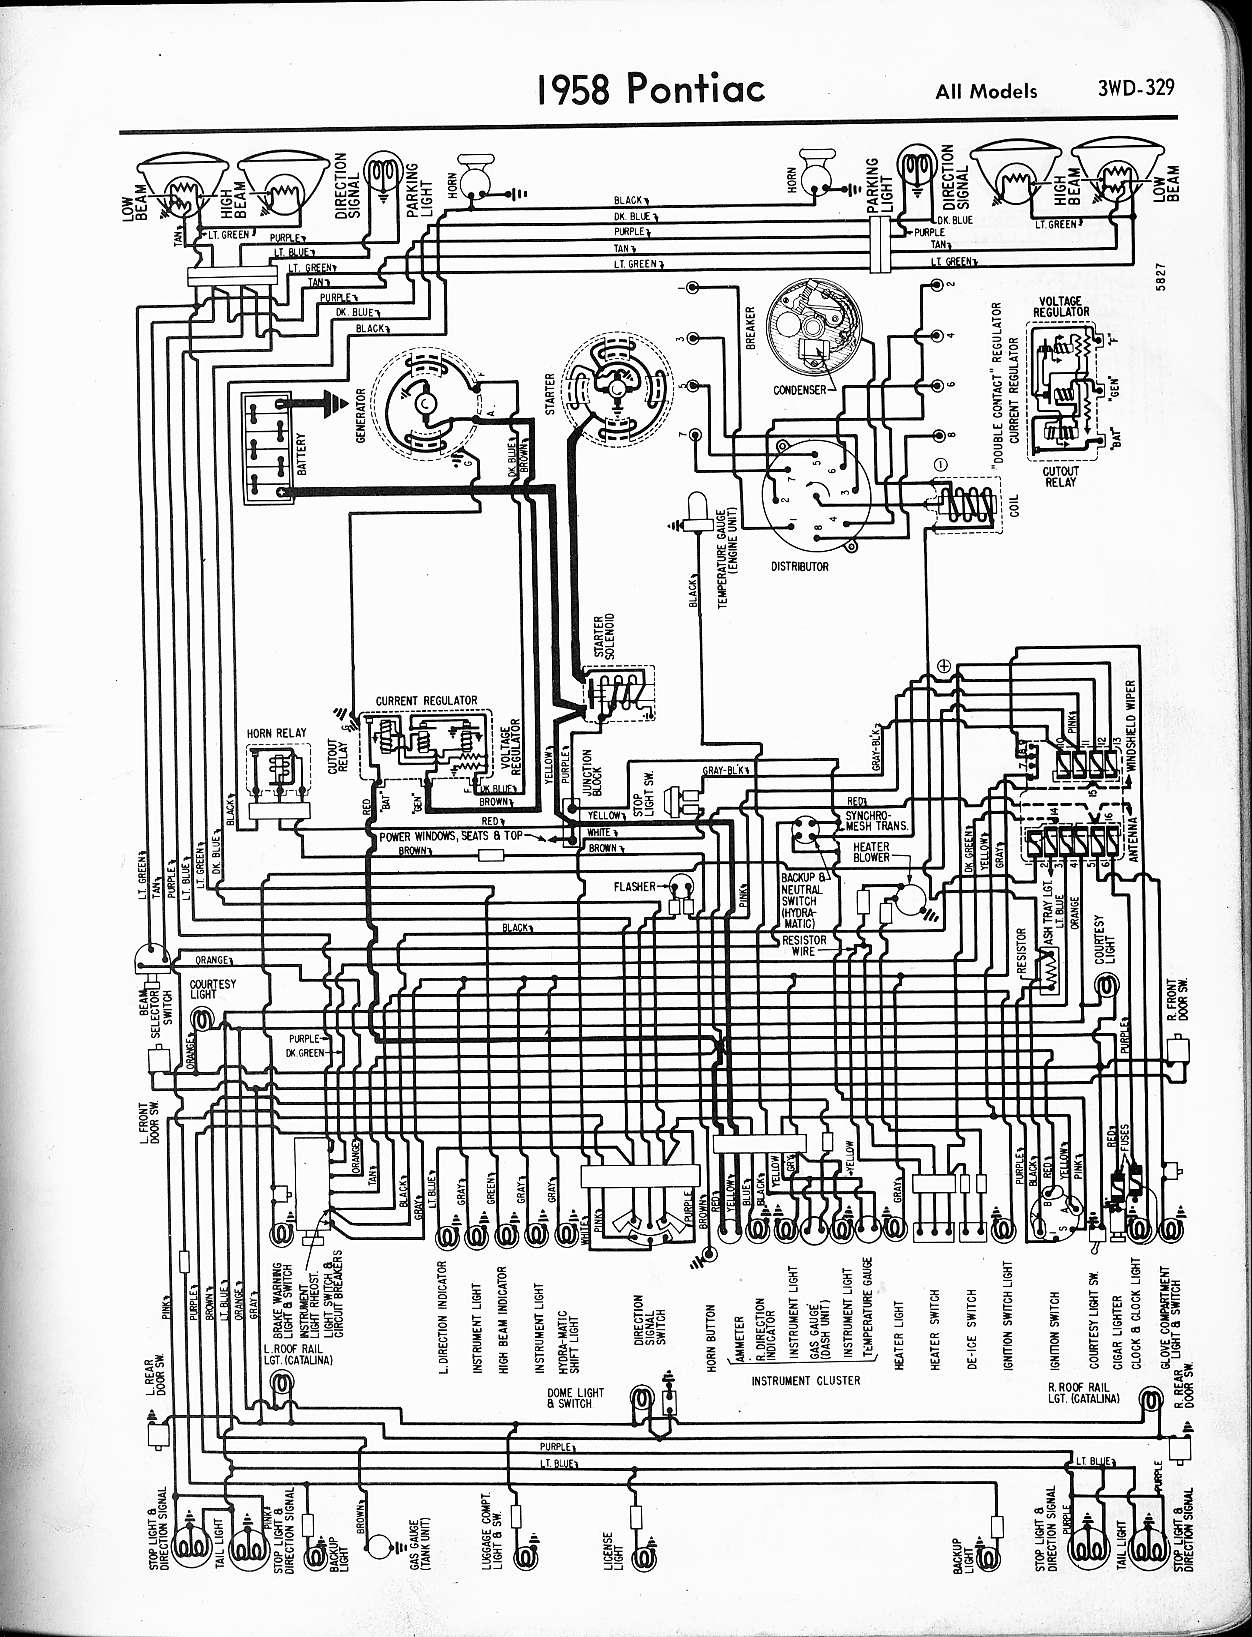 1969 Pontiac Wiring Diagram Change Your Idea With Electrical For 1960 Chevrolet Corvair All Models 1957 1965 Rh Oldcarmanualproject Com Grand Prix Firebird